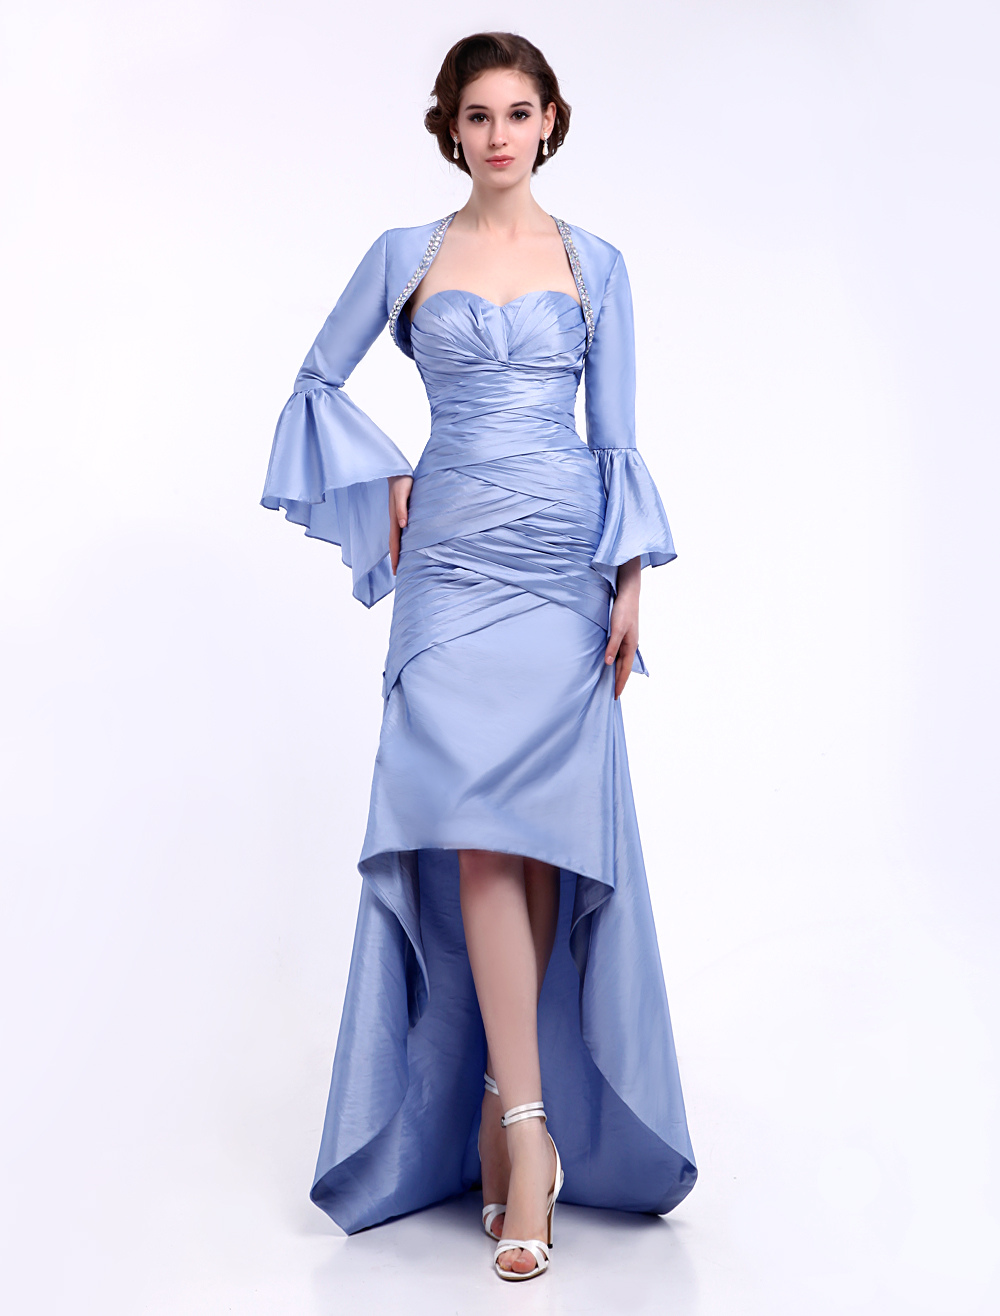 Buy Baby Blue Evening Dress Ruched 2 Piece Mother of the Bride Dress Sweetheart A Line High Low Party Dress Milanoo for $129.99 in Milanoo store